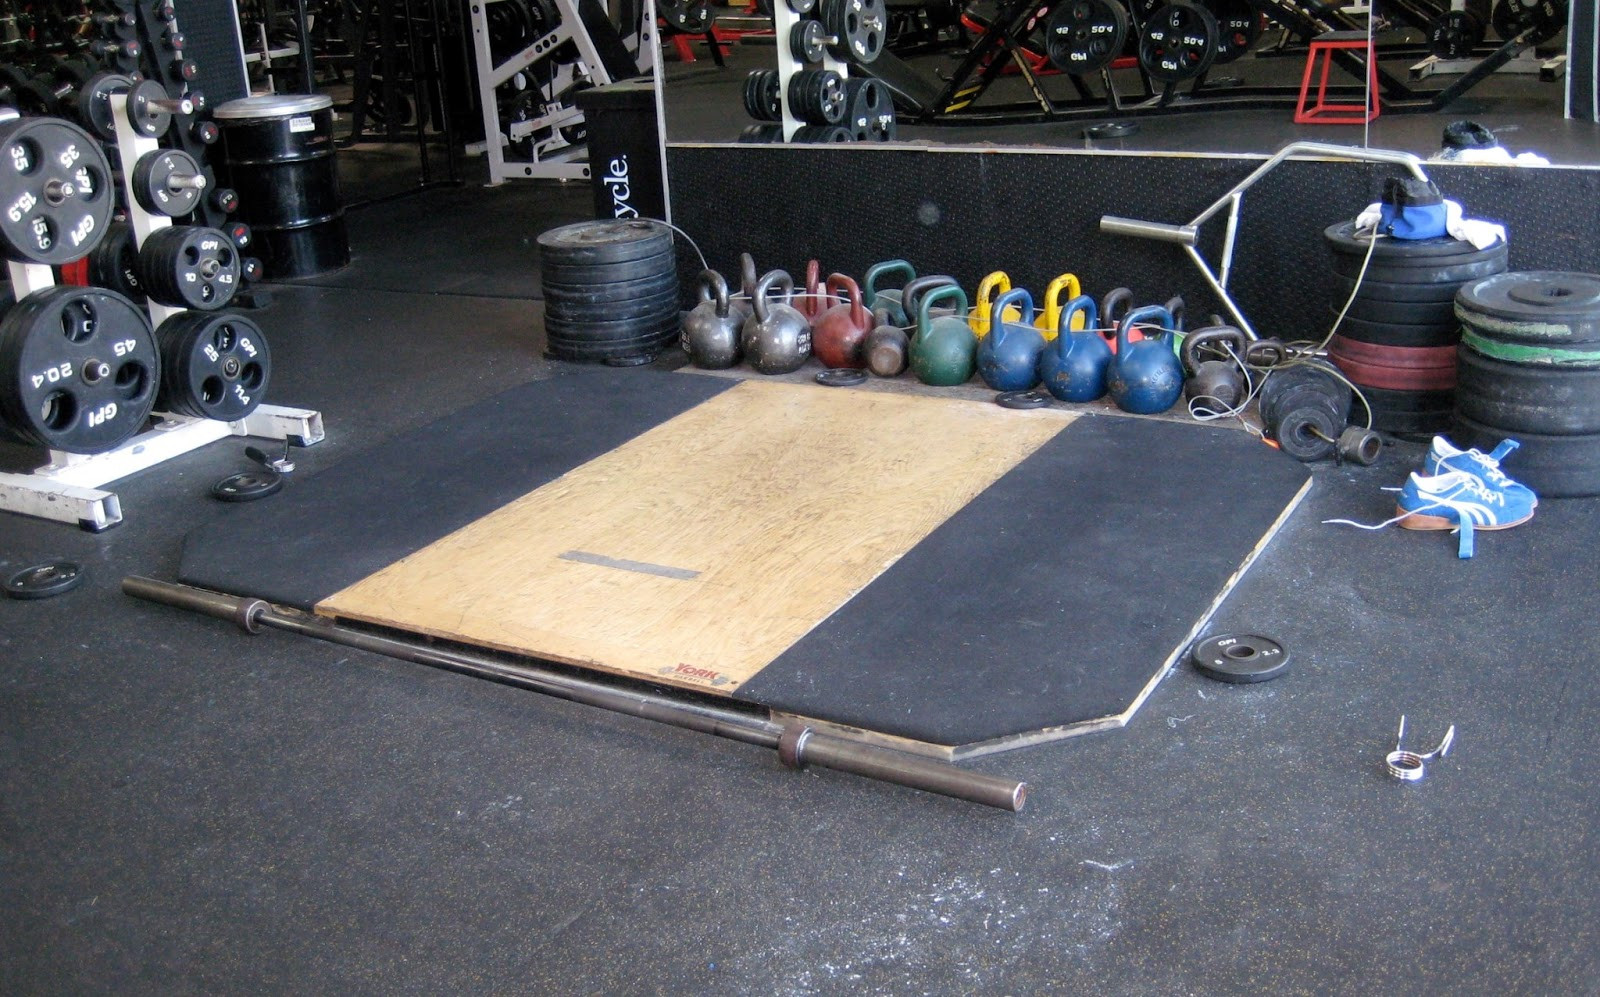 Best ideas about DIY Lifting Platform . Save or Pin The Thoughts of a Big Brown Bear How to Build a Now.